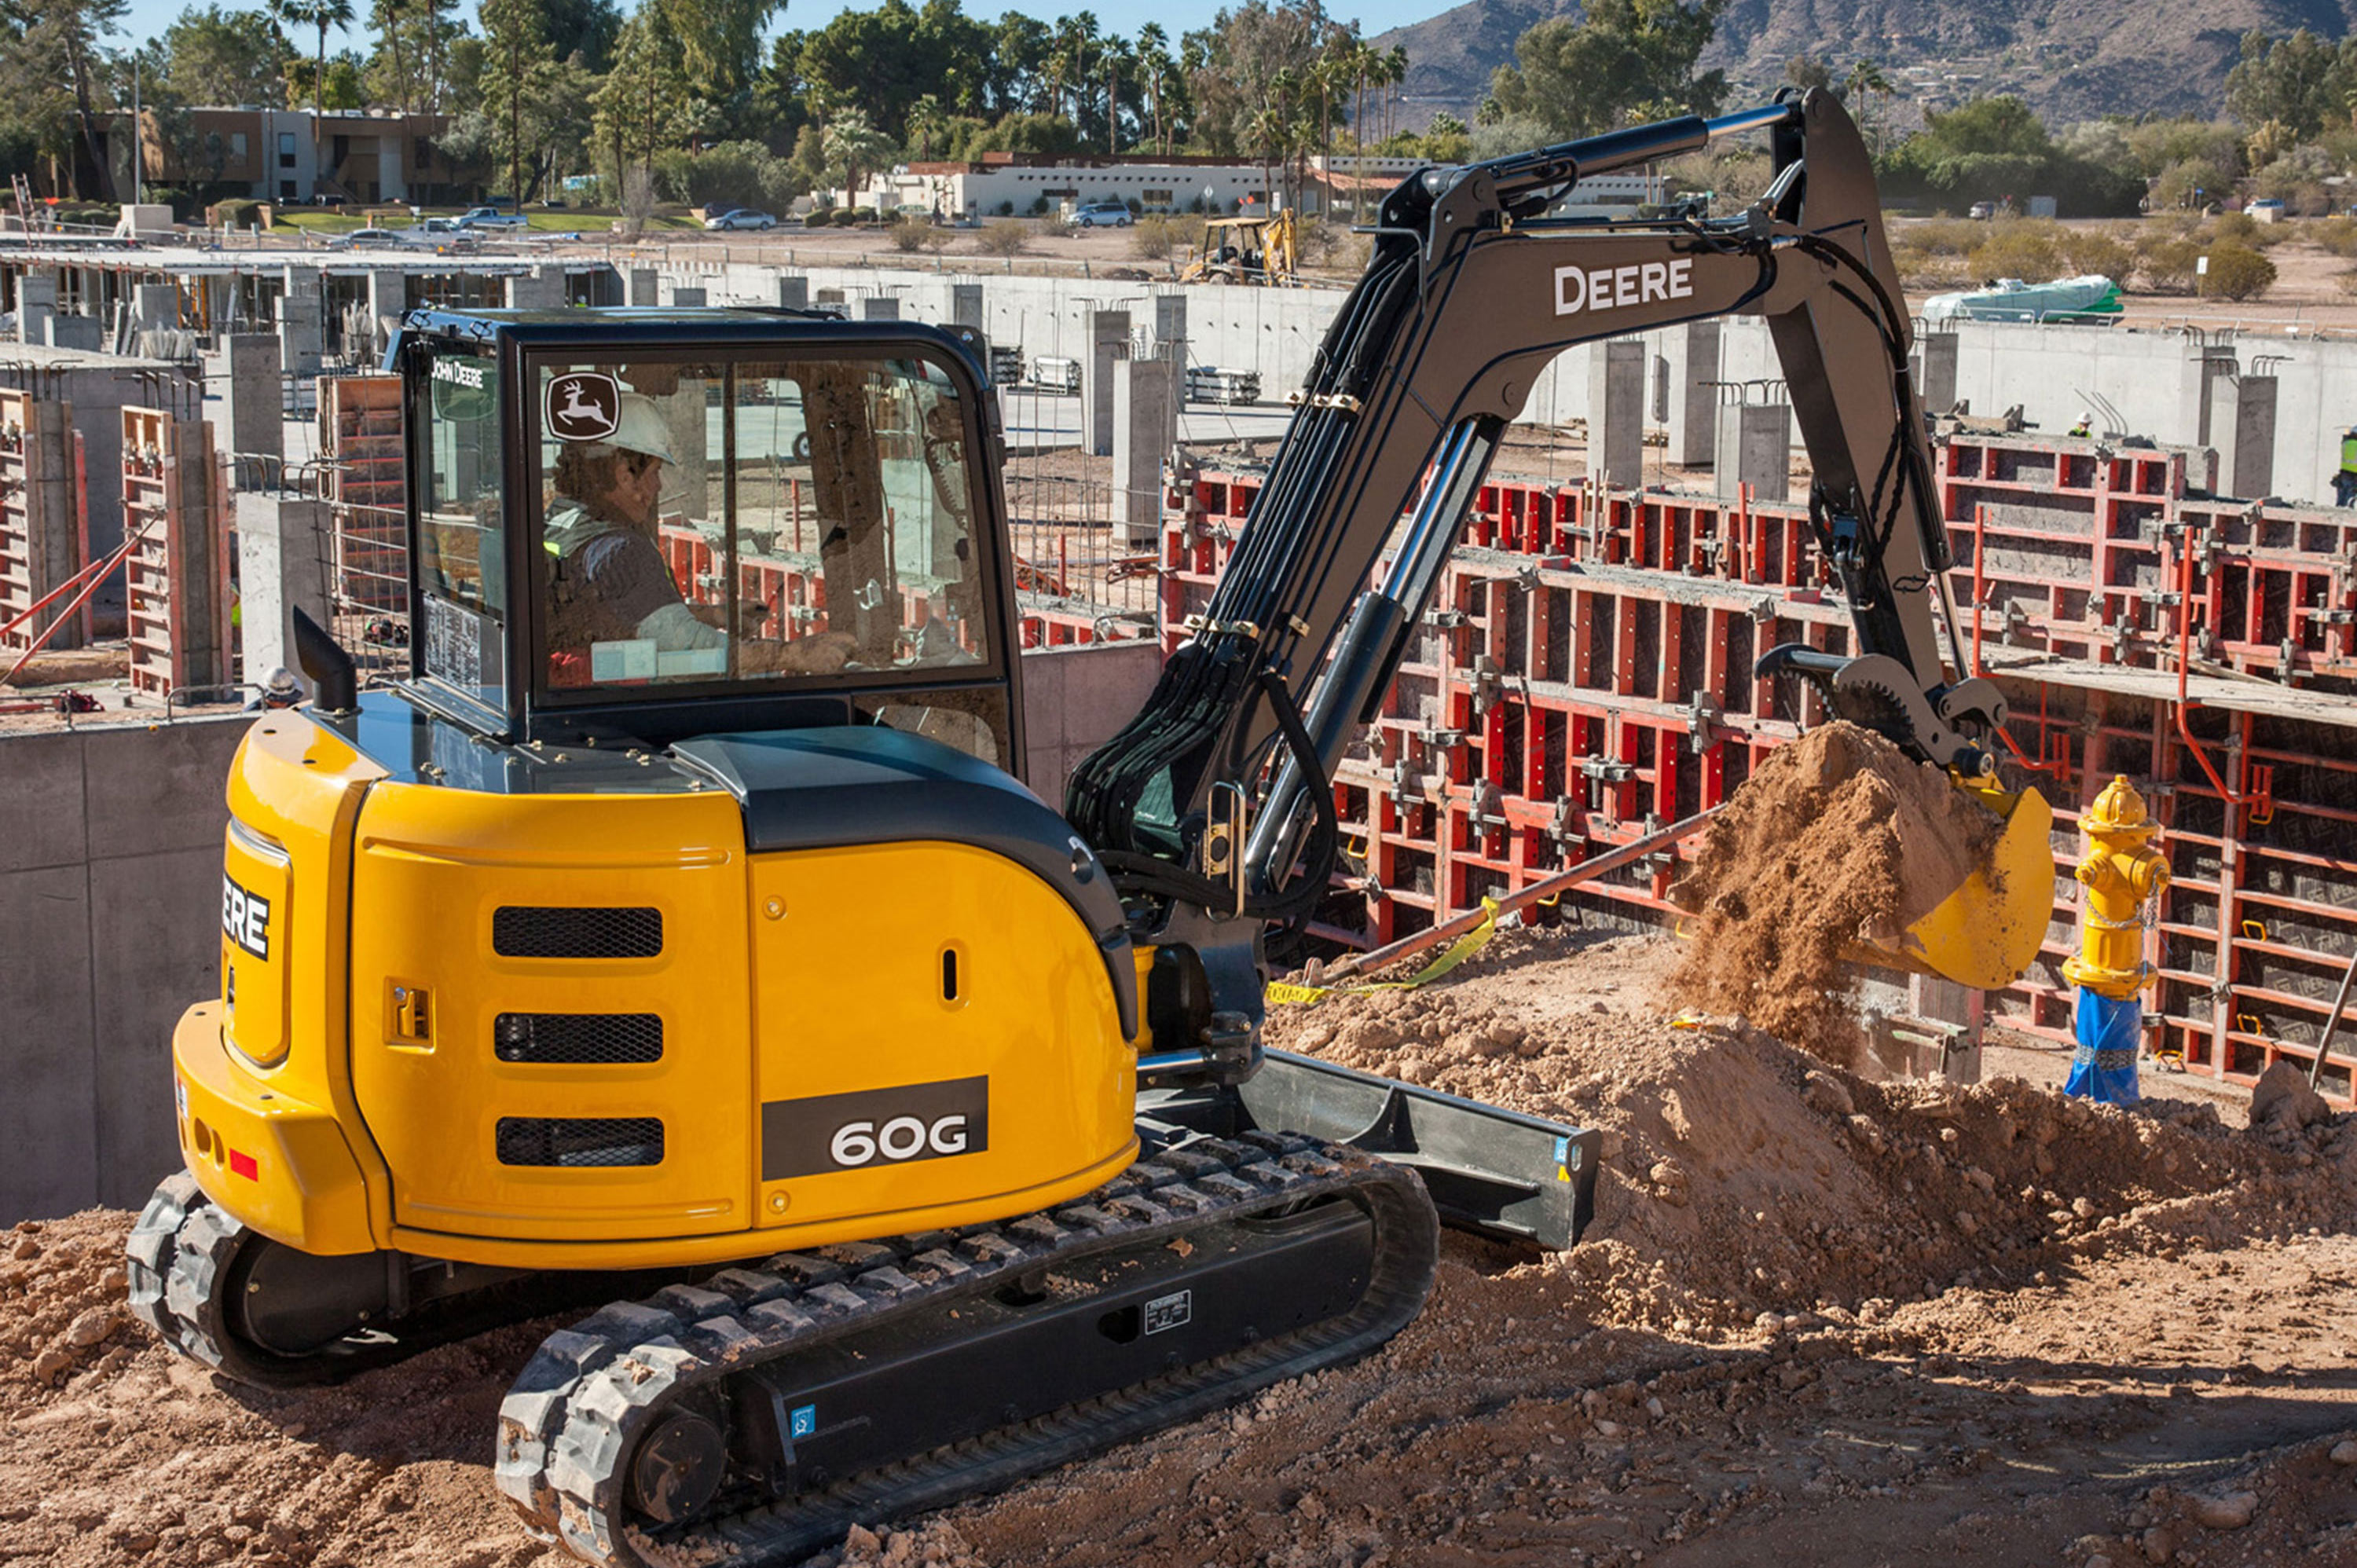 The 60G joins the G-Series, which was unveiled at World of Concrete ...